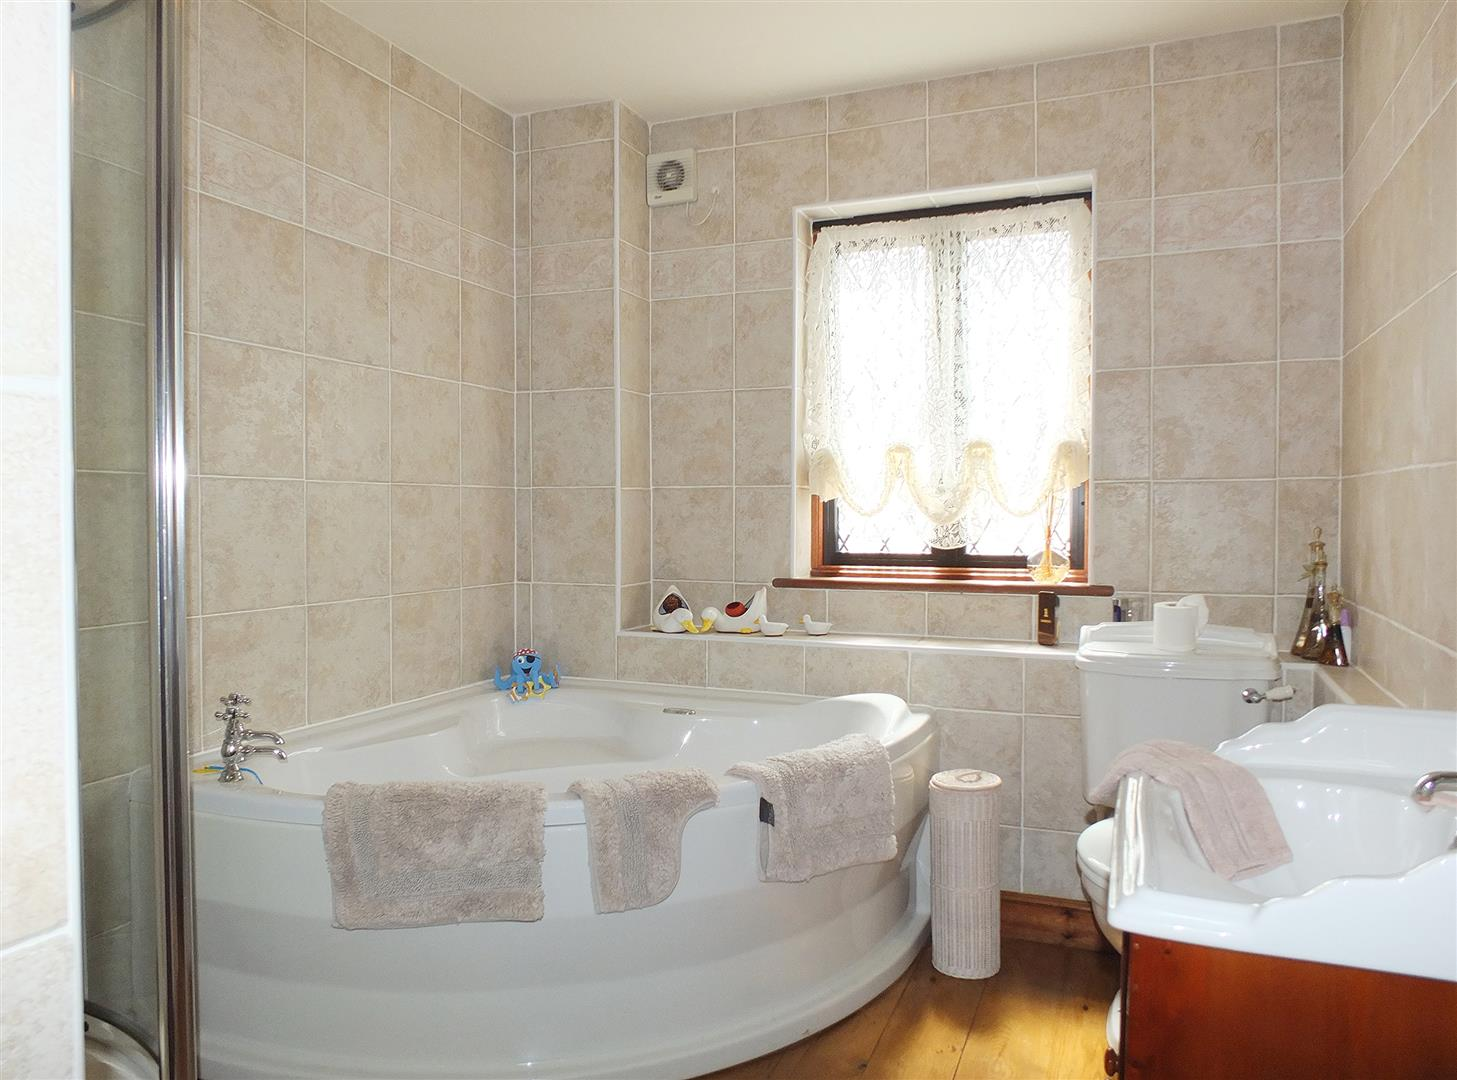 5 bed detached house for sale in Boston, PE20 2DB  - Property Image 23